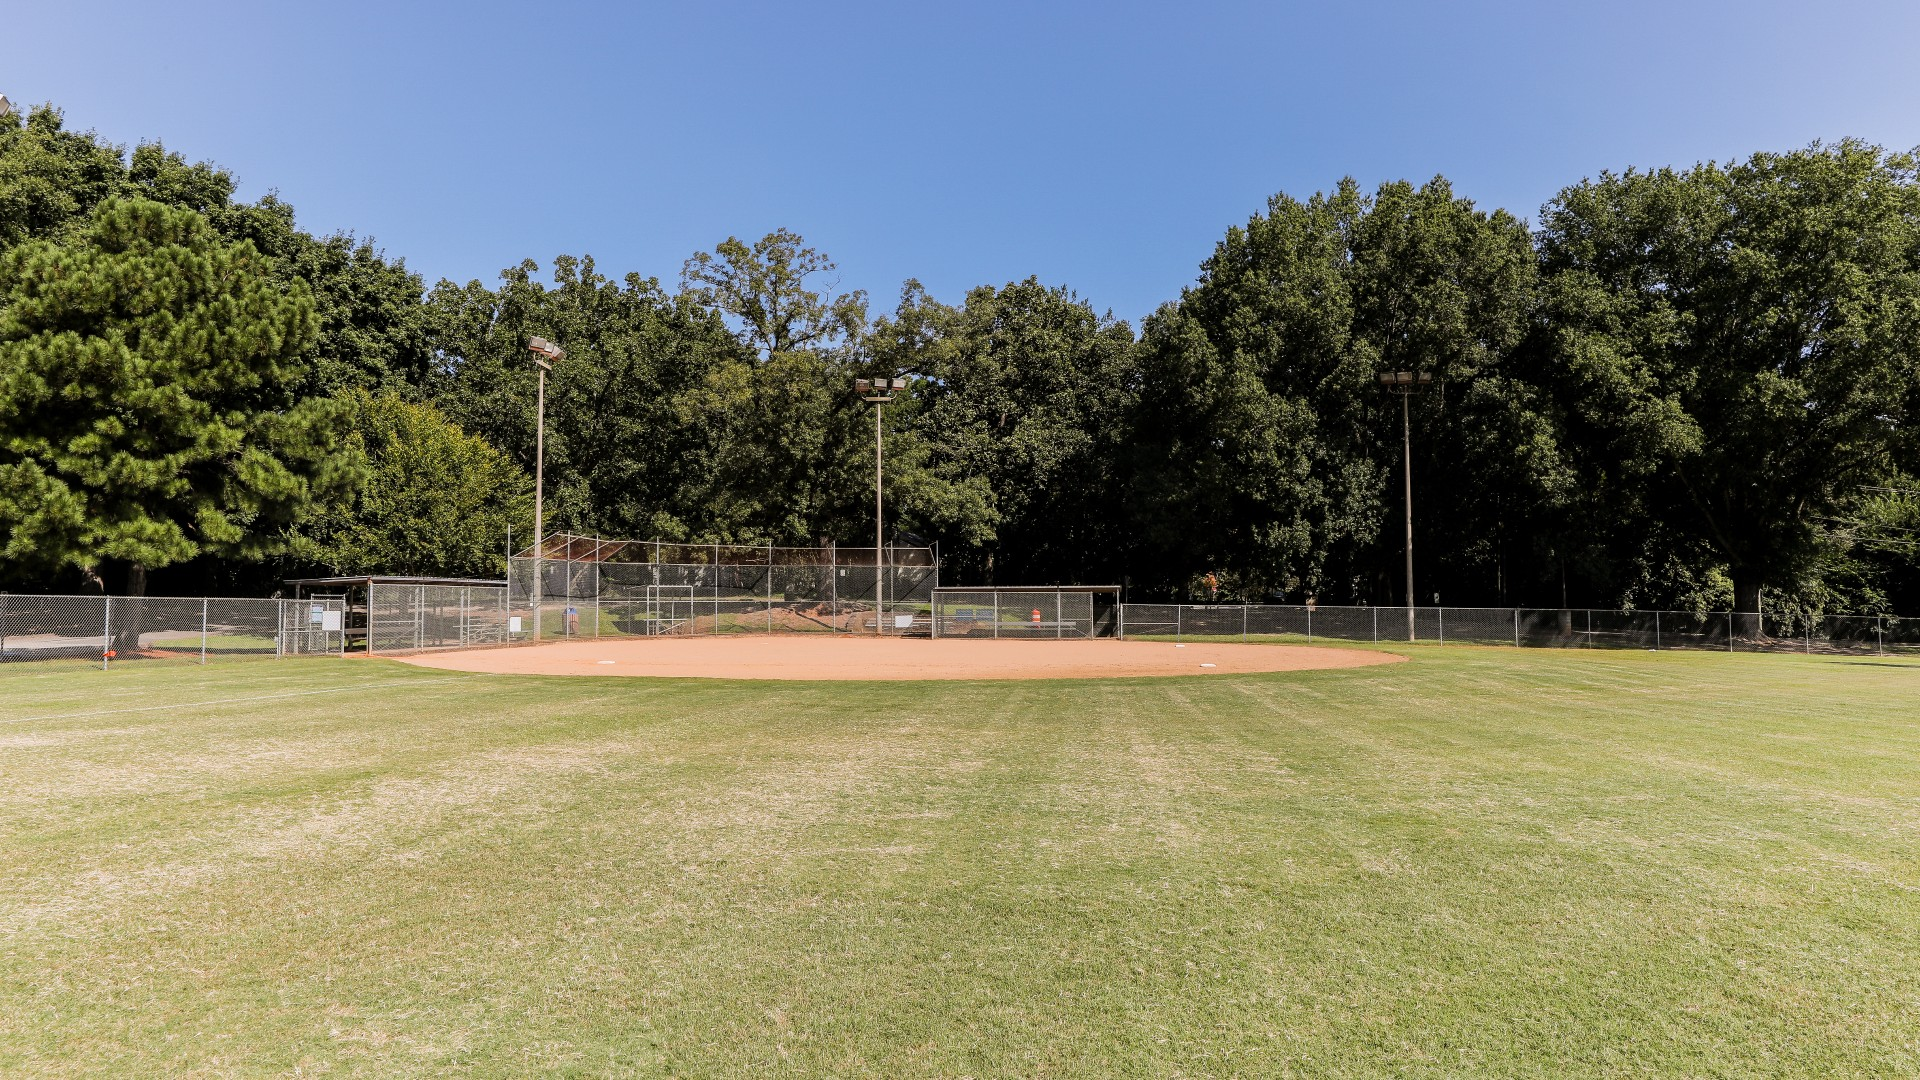 A third field used for youth baseball